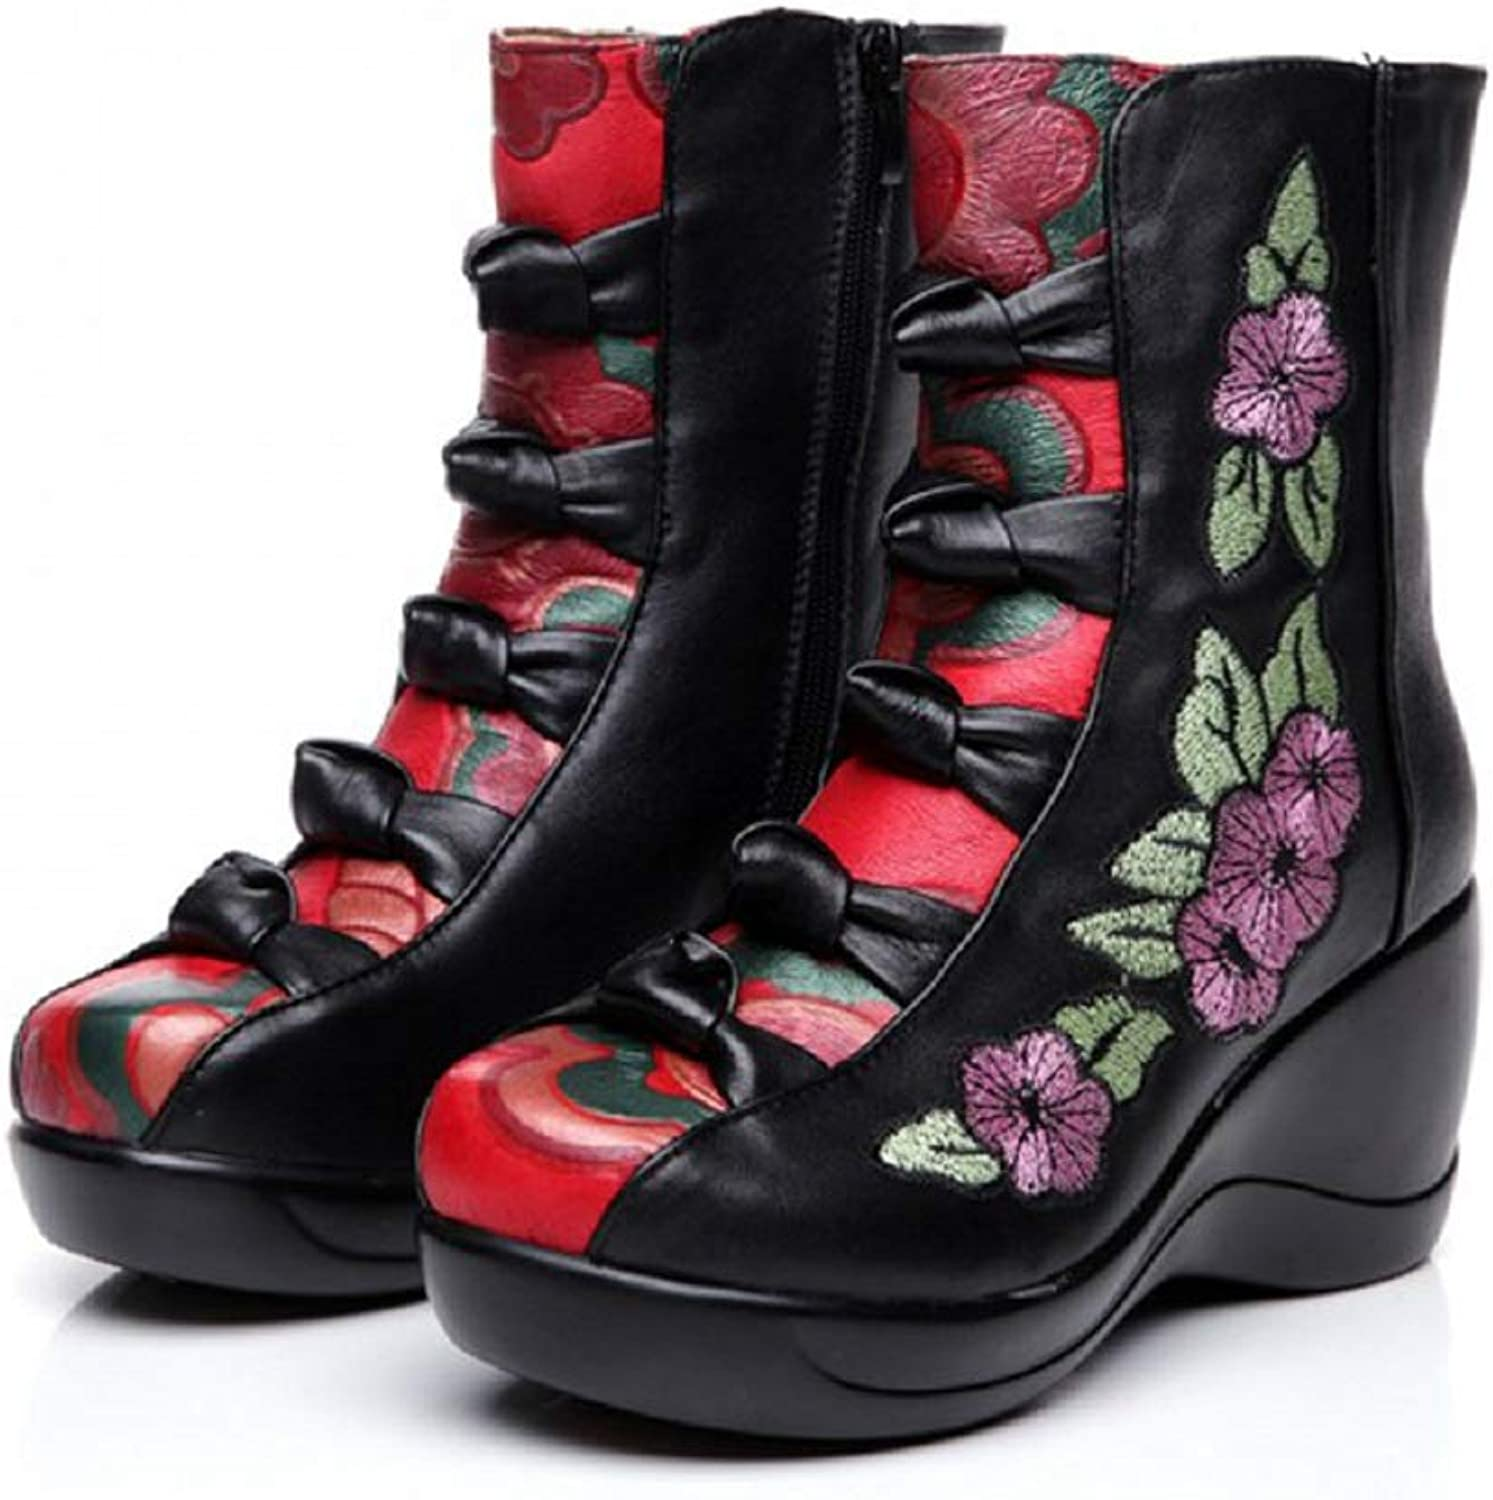 LingGT Wedge Heel Boots Women Embroidery Flower Mixed color shoes (color   Black, Size   CA 9)